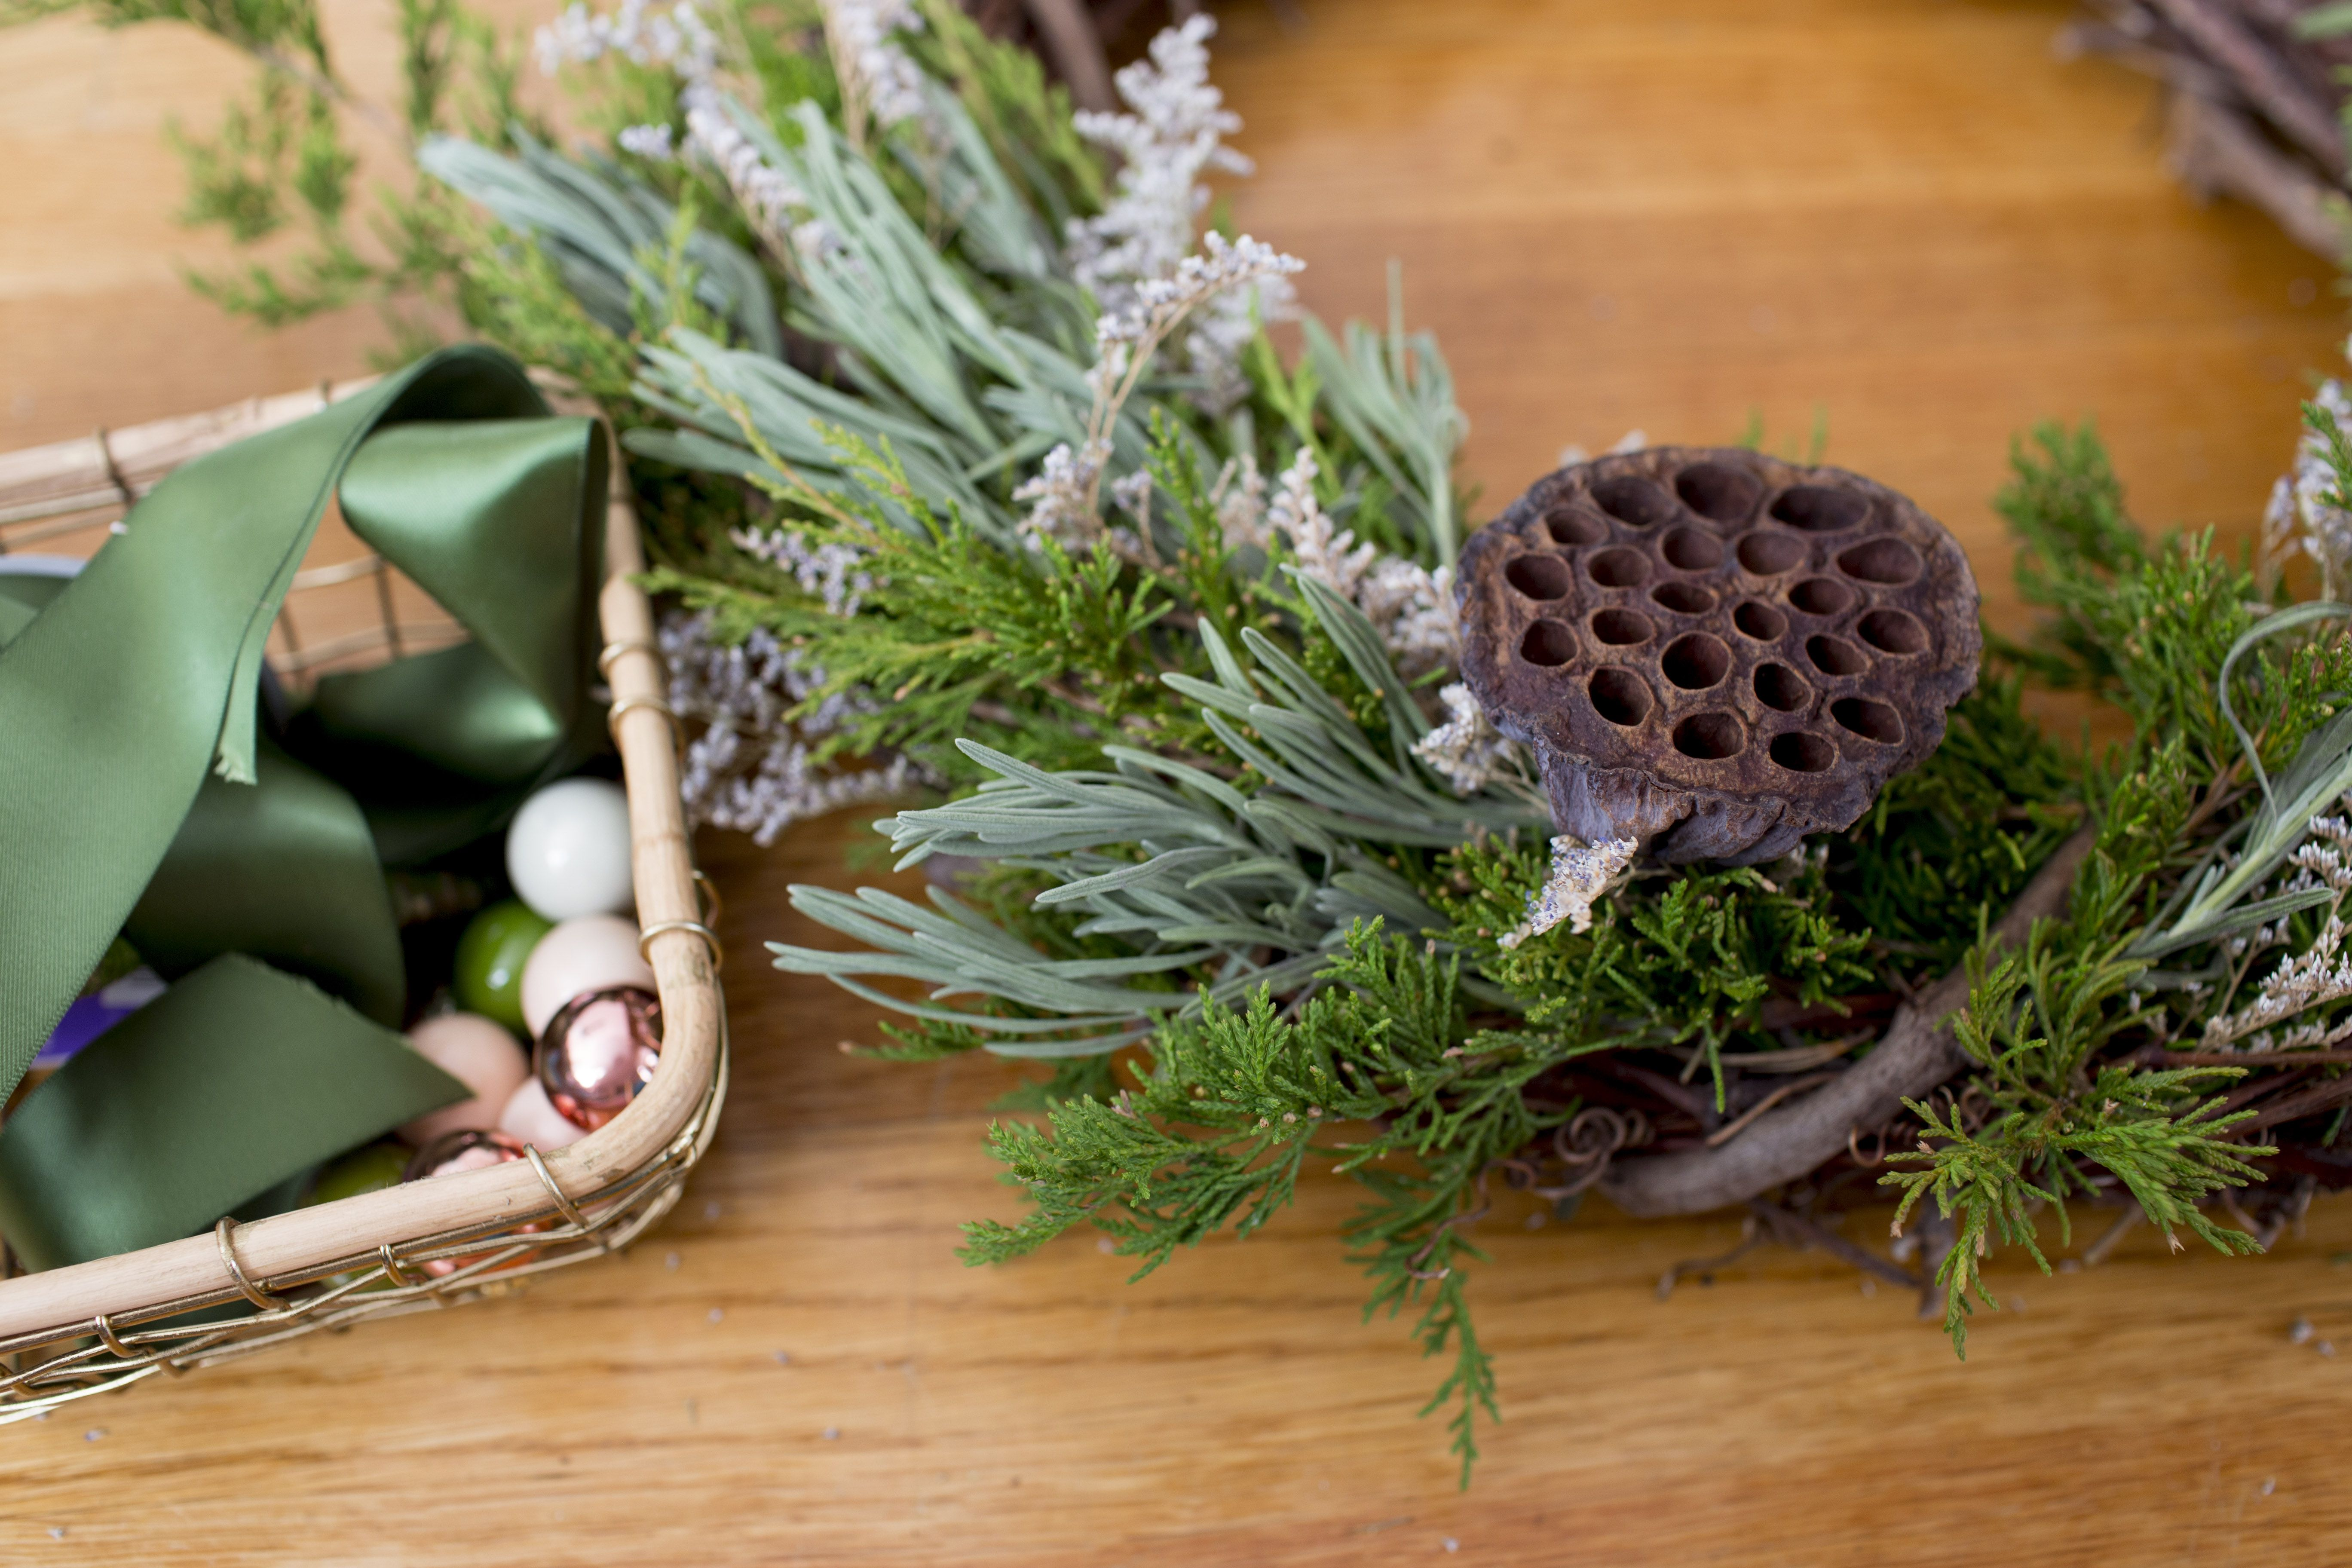 The Best Way to Make a DIY Wreath That Looks Better Than Store Bought